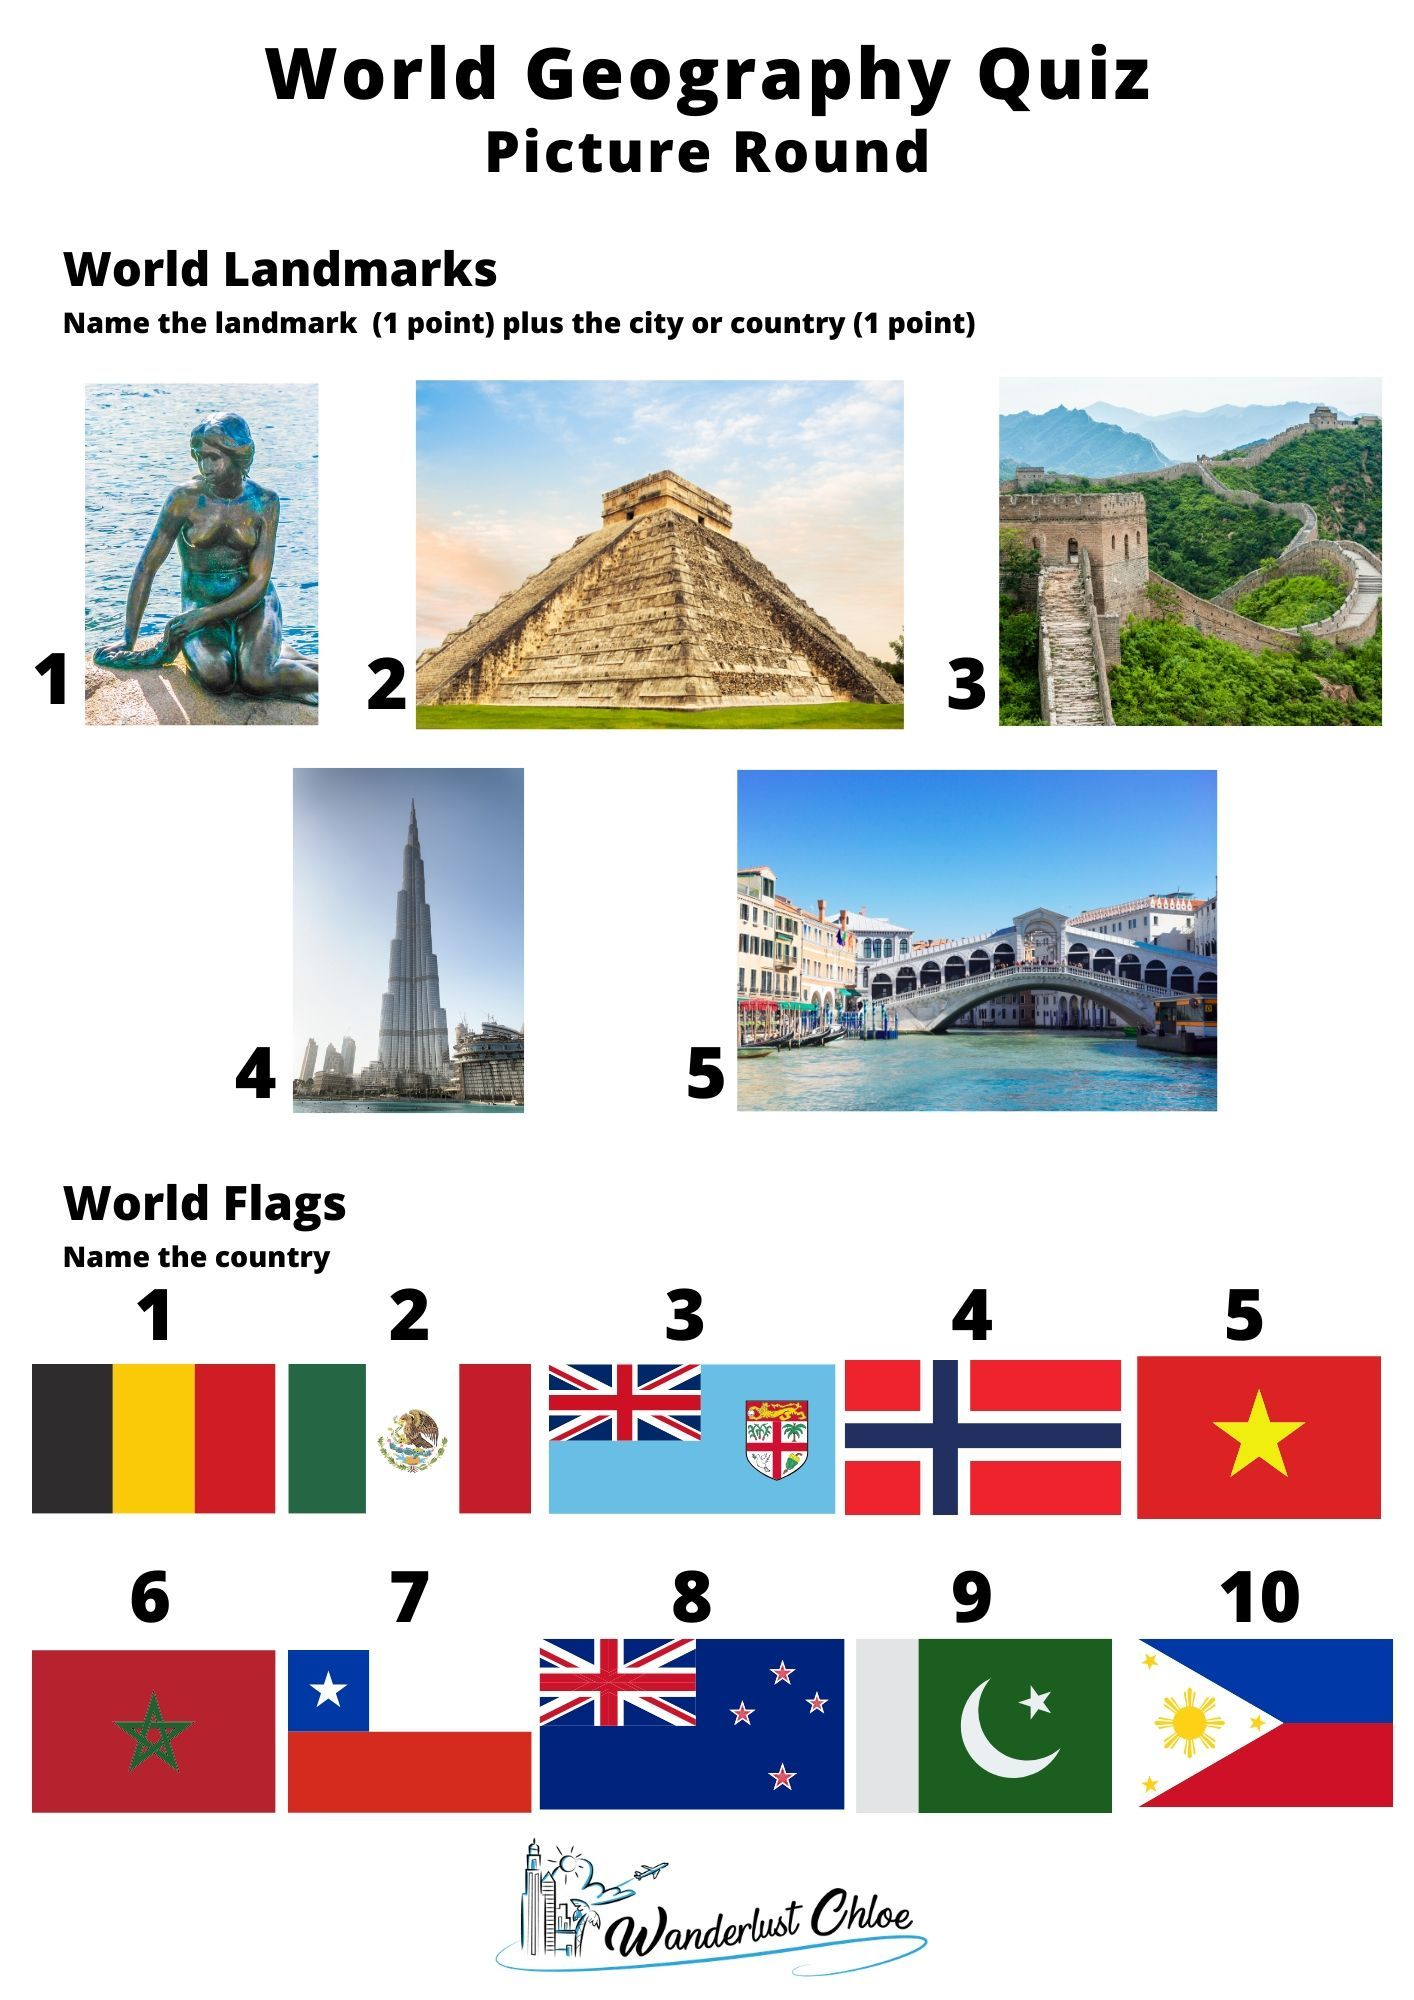 50 World Geography Trivia Questions To Test Your World